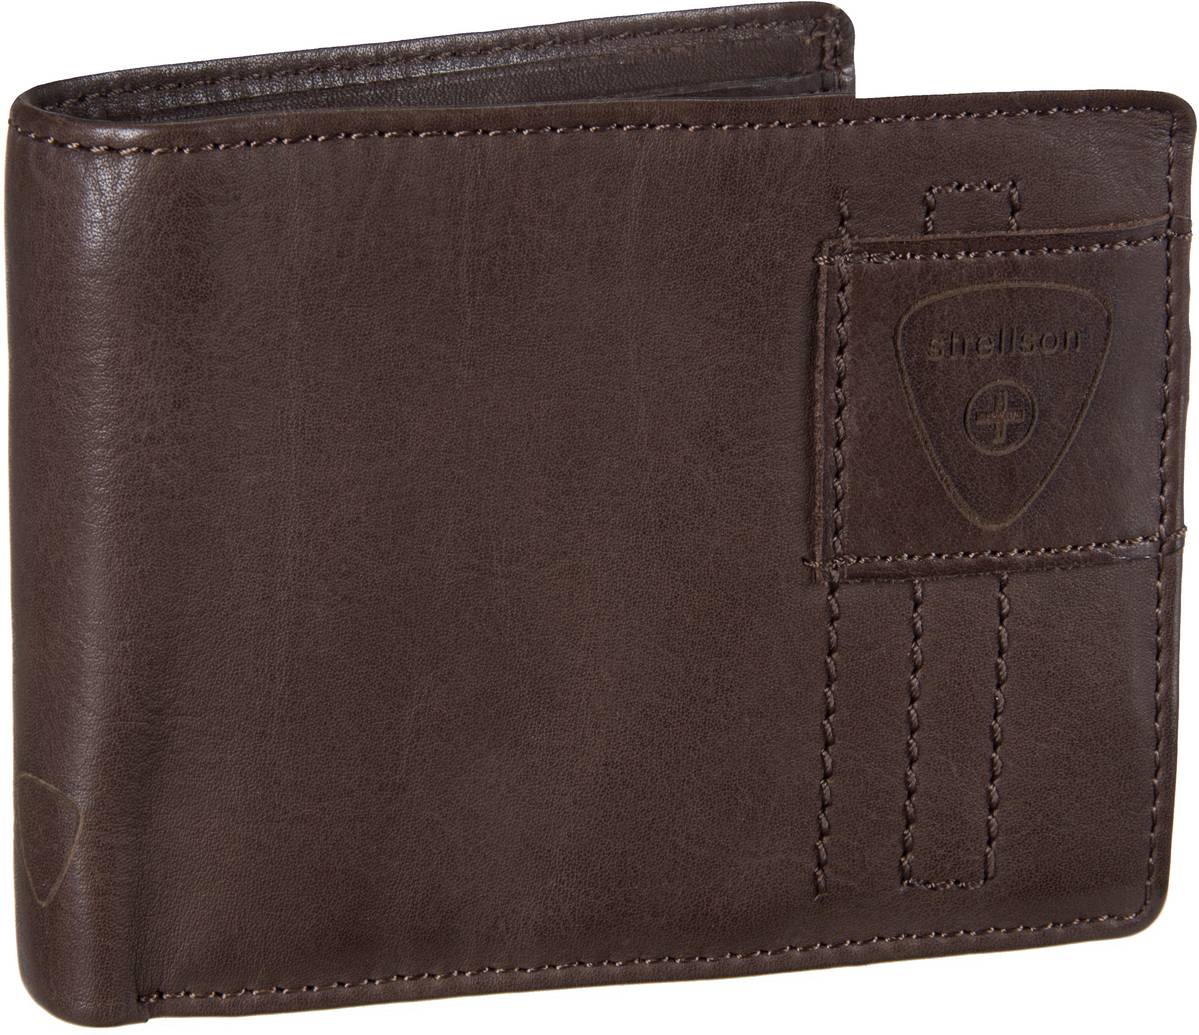 Upminster Billfold H6 Dark Brown